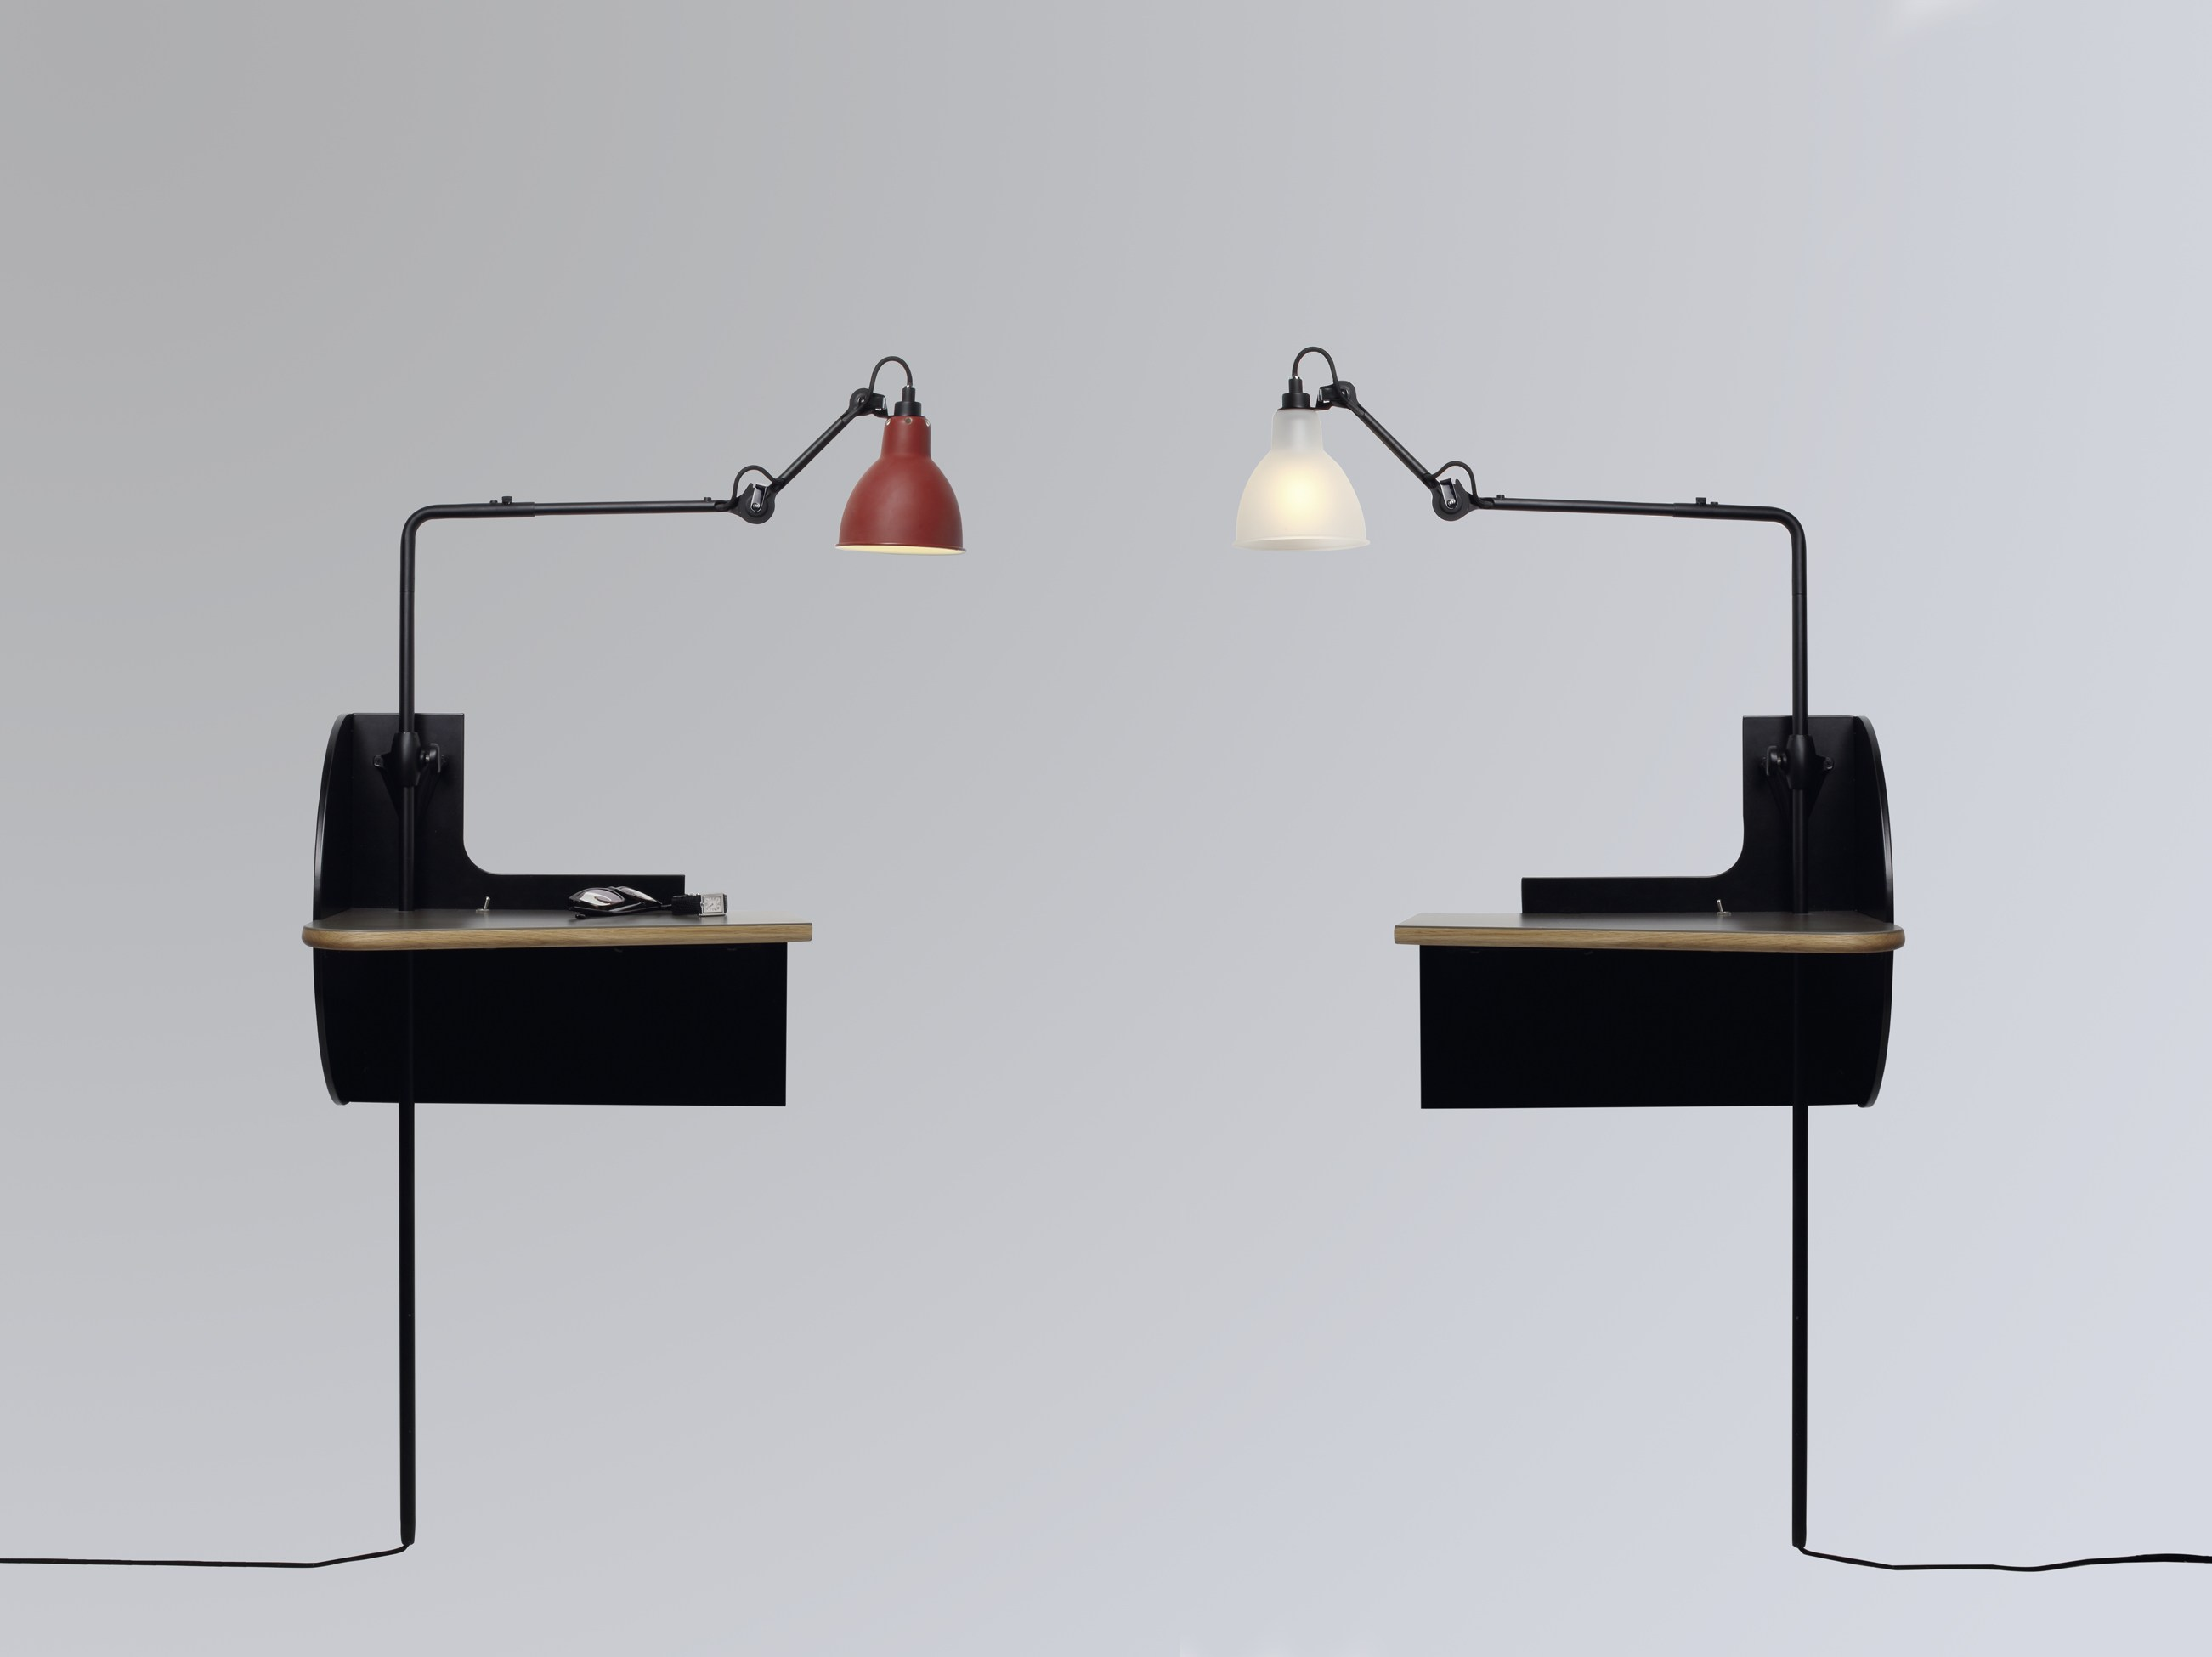 Le mobilier de gras table de nuit collection lampe gras by - Table de nuit suspendue ...